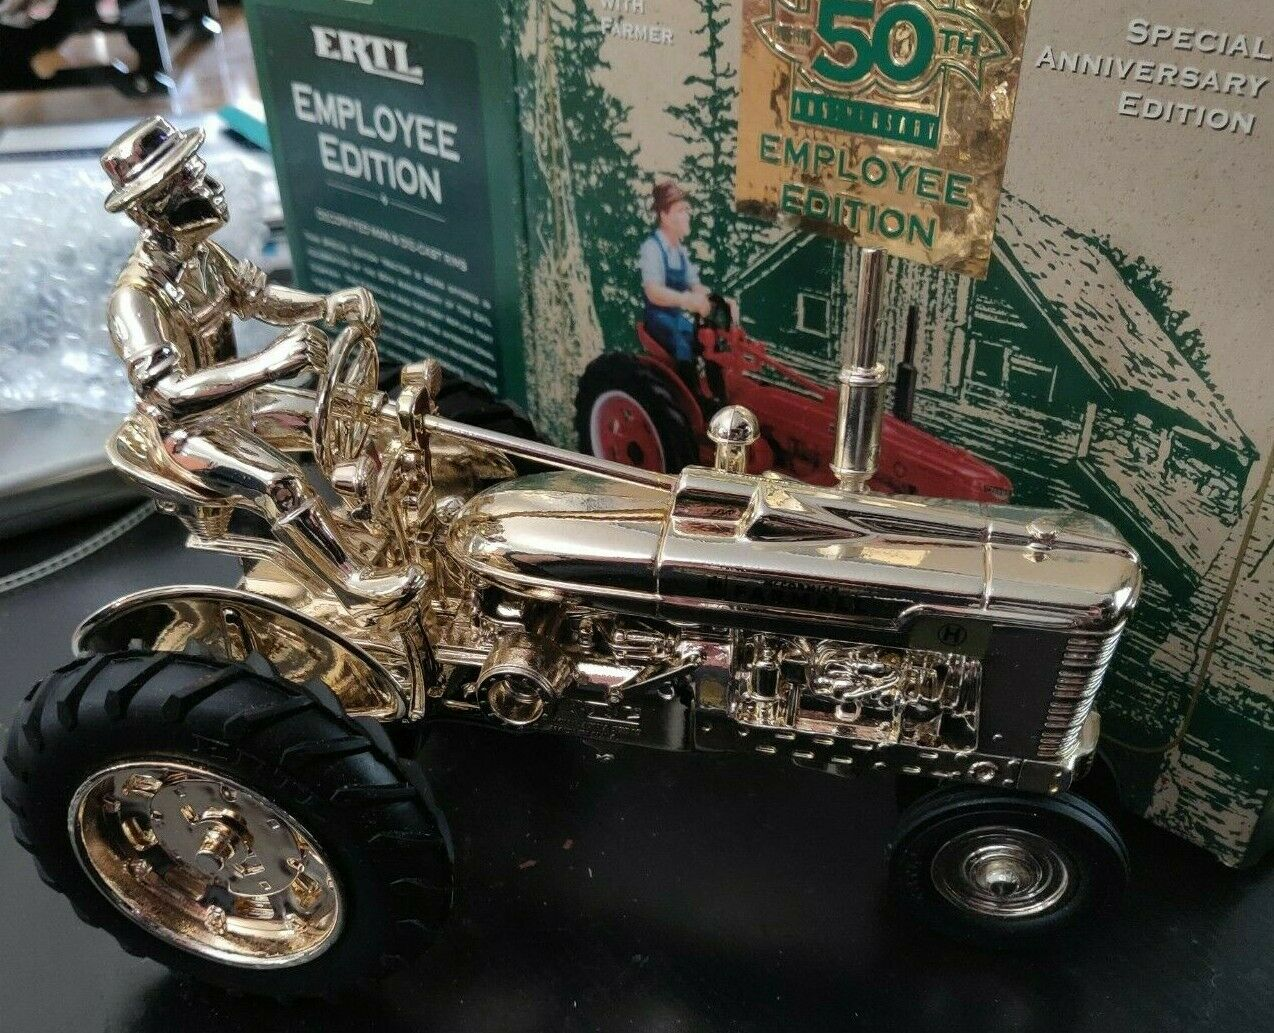 RARE Farmall H gold 50th Anniversary Limited Employee Edition by Ertl 1 16 Scale